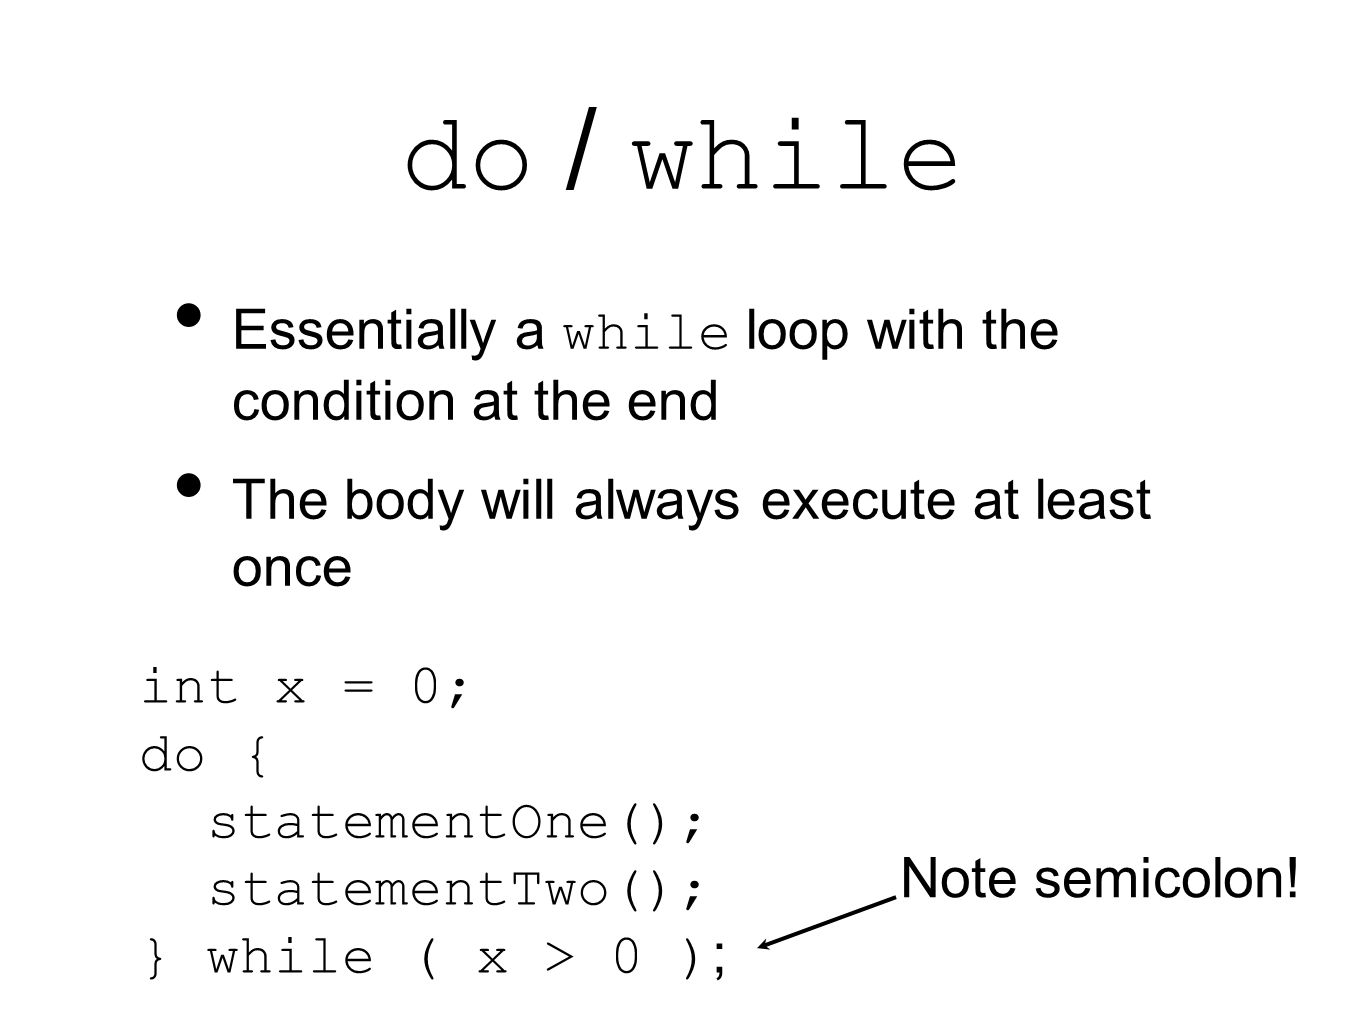 Essentially a while loop with the condition at the end The body will always execute at least once int x = 0; do { statementOne(); statementTwo(); } while ( x > 0 ) ; Note semicolon!